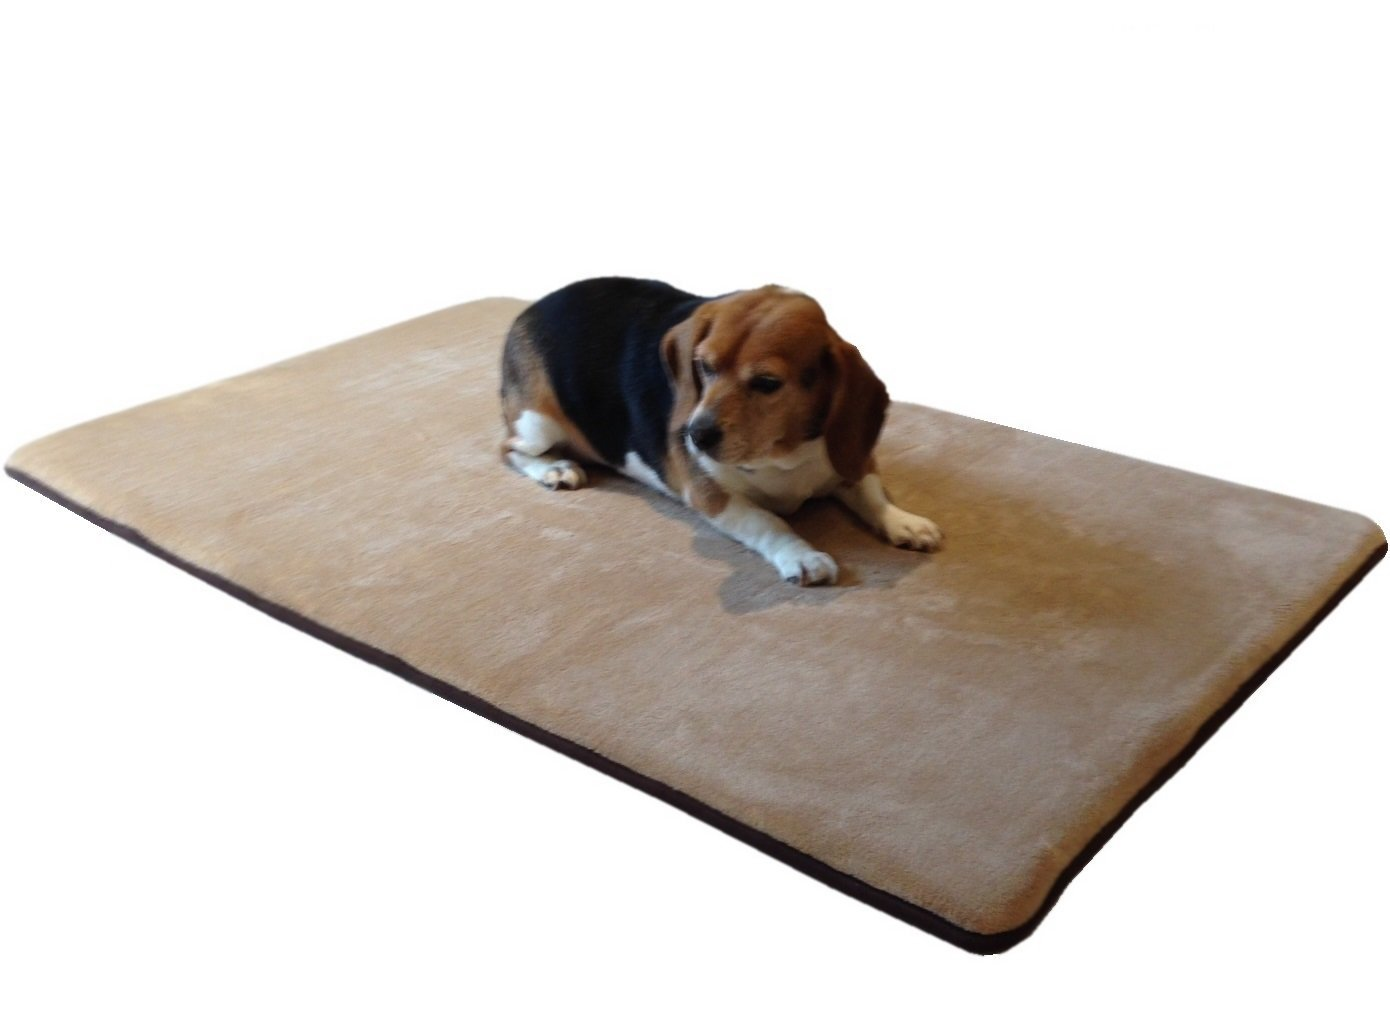 petmat set pet large accessories new ptc included animal mat pad product heated